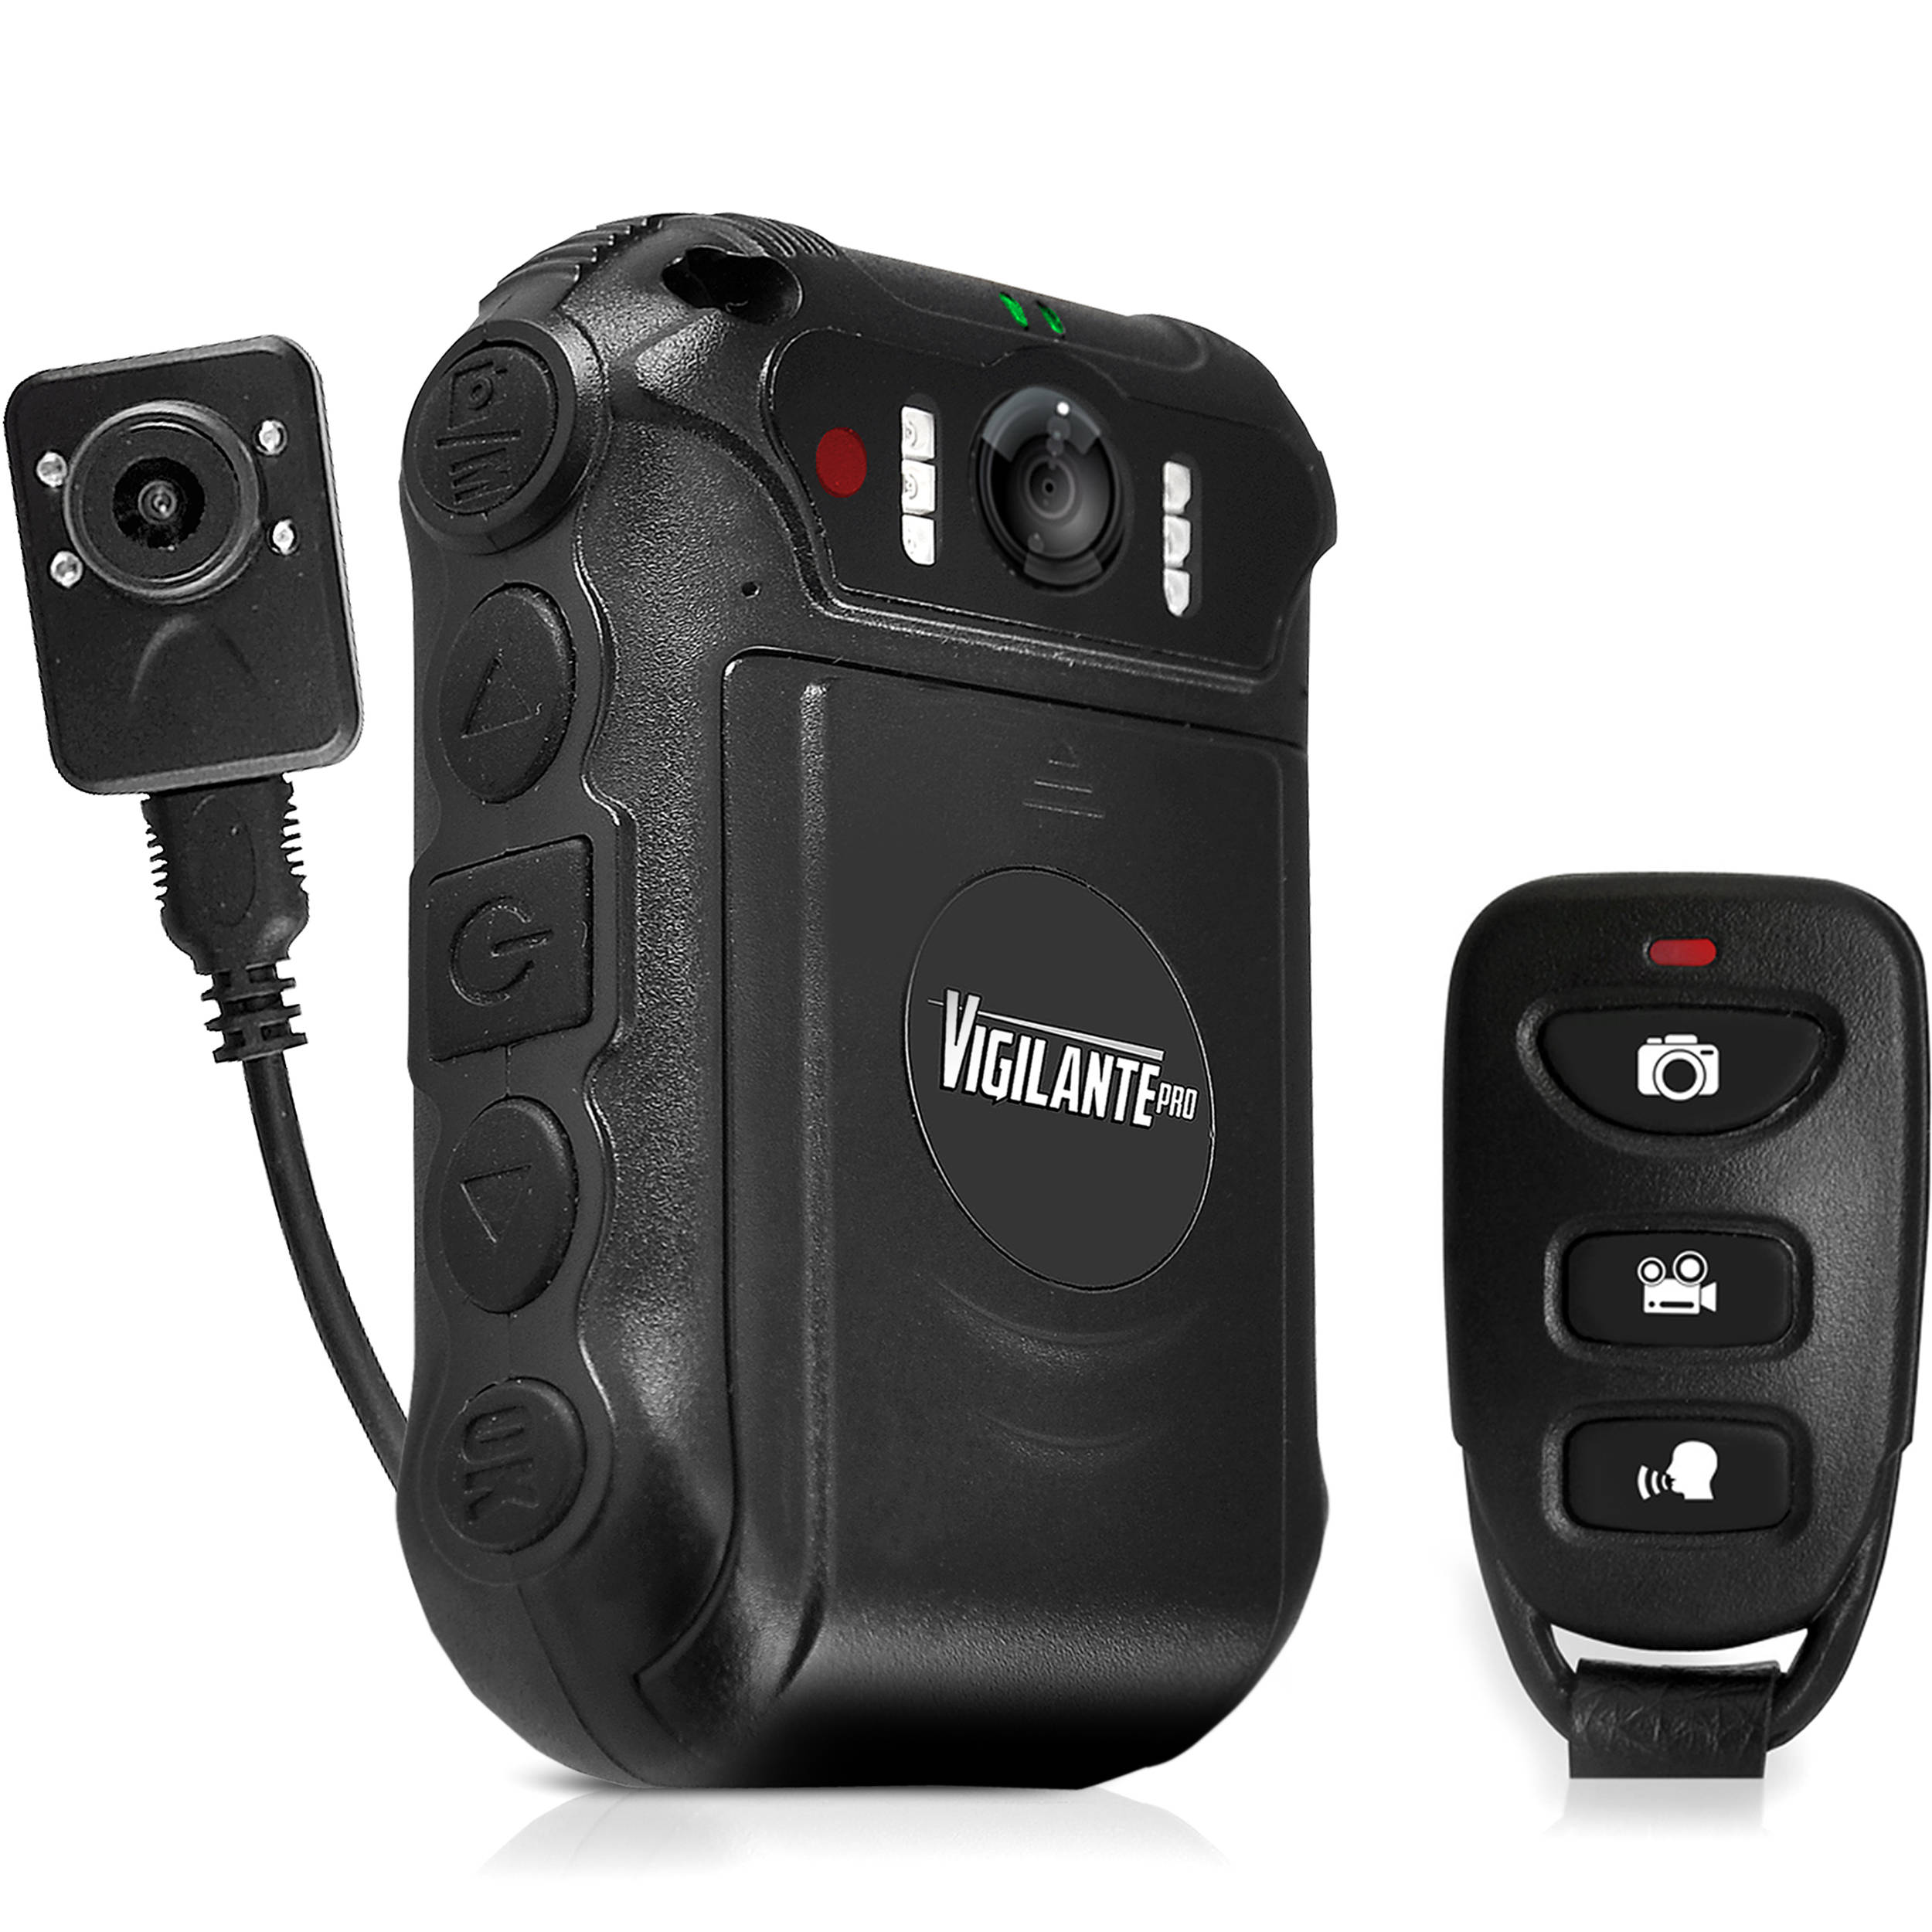 PYLE-SPORTS Vigilante Pro Compact Action Body Camera PPBCM16 B&H